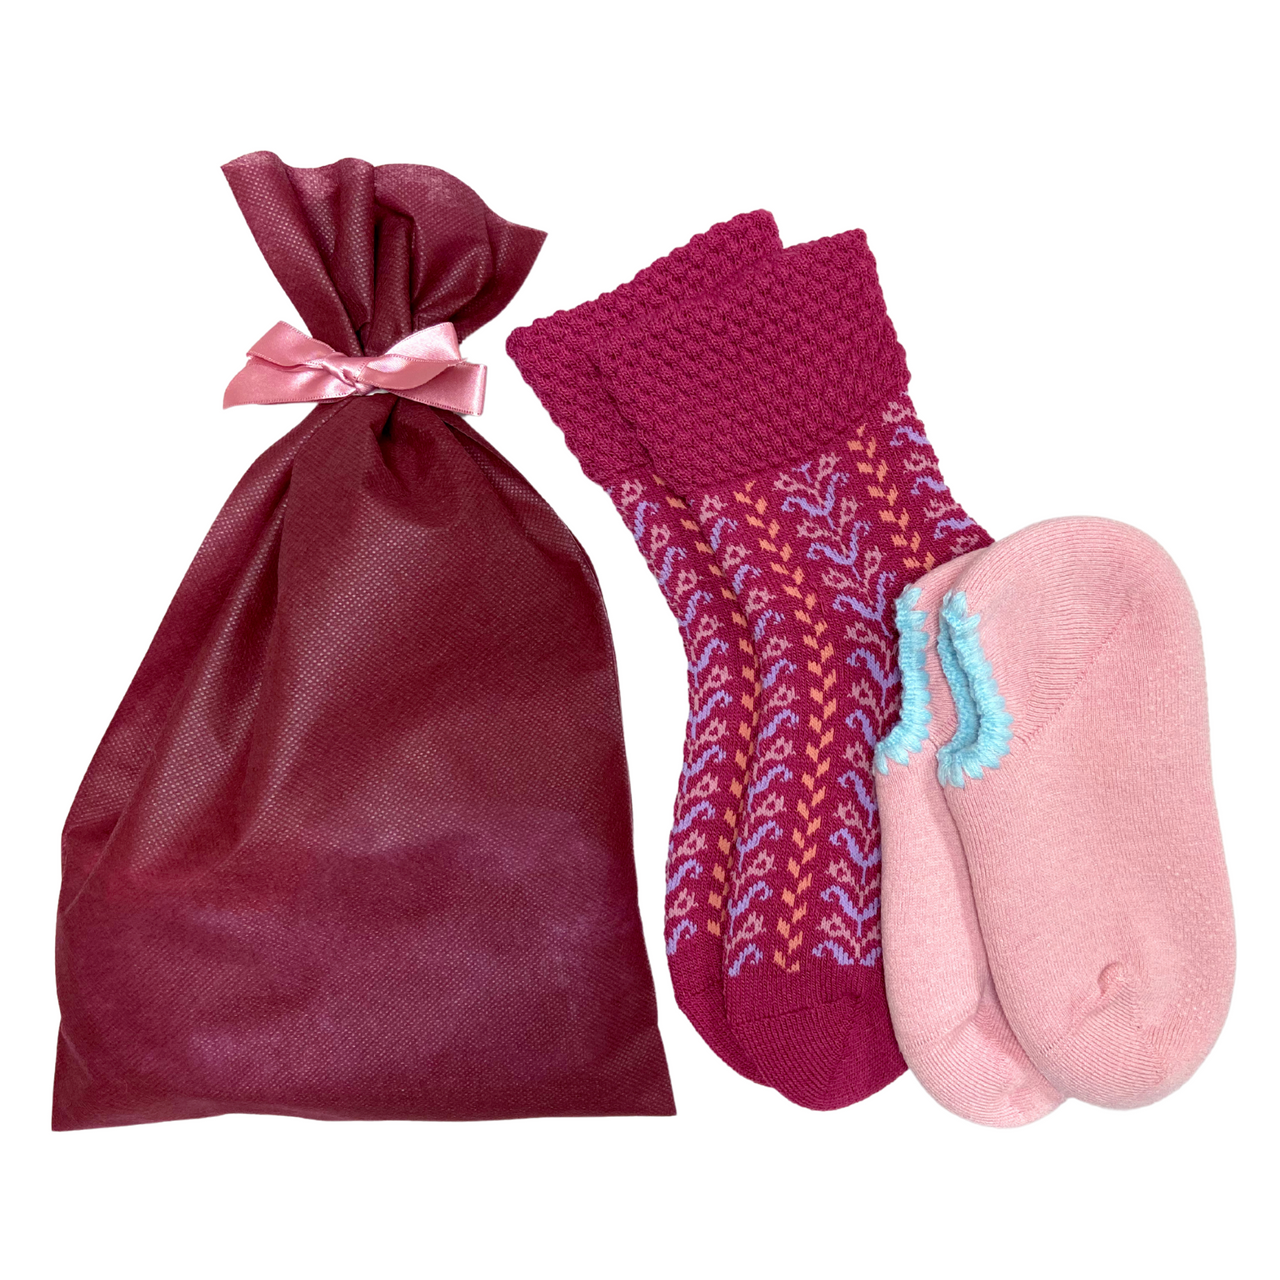 Giftwrapped! CHERRYSTONE® Slipper Sock and Boot Sock Set of 2 Pairs | Valentine's Day Gift | 2 Pairs of Slipper and Boot Socks | Peach and Herringbone Raspberry - CHERRYSTONE